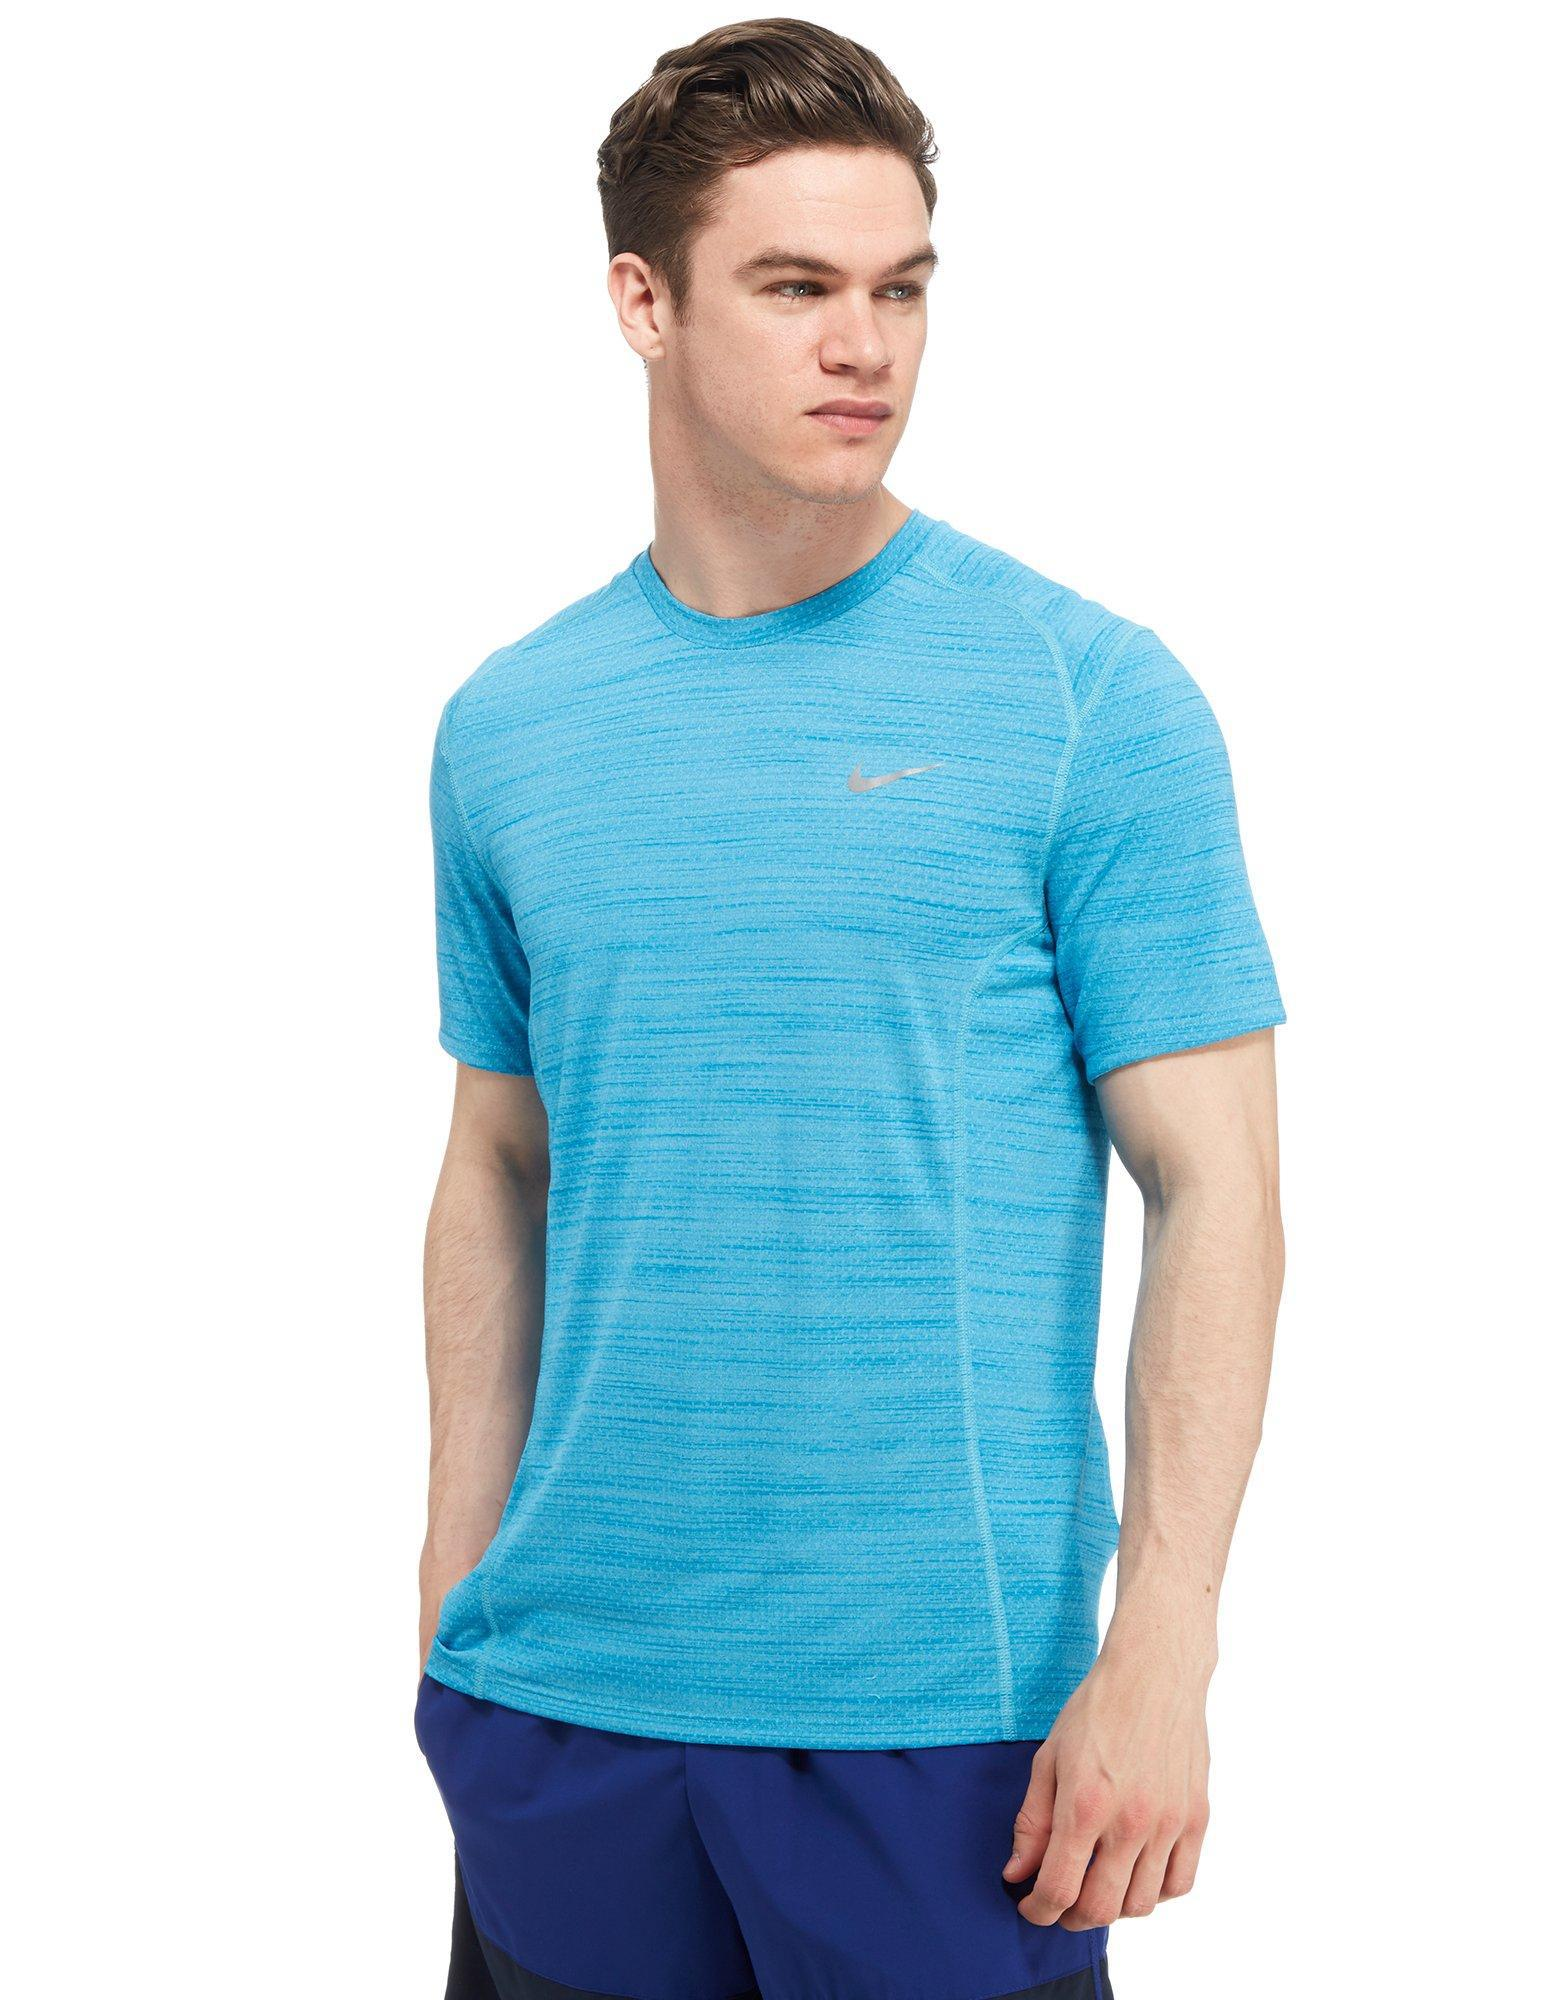 97075f03dd39 Nike Dri-fit Cool Miler T-shirt in Blue for Men - Lyst